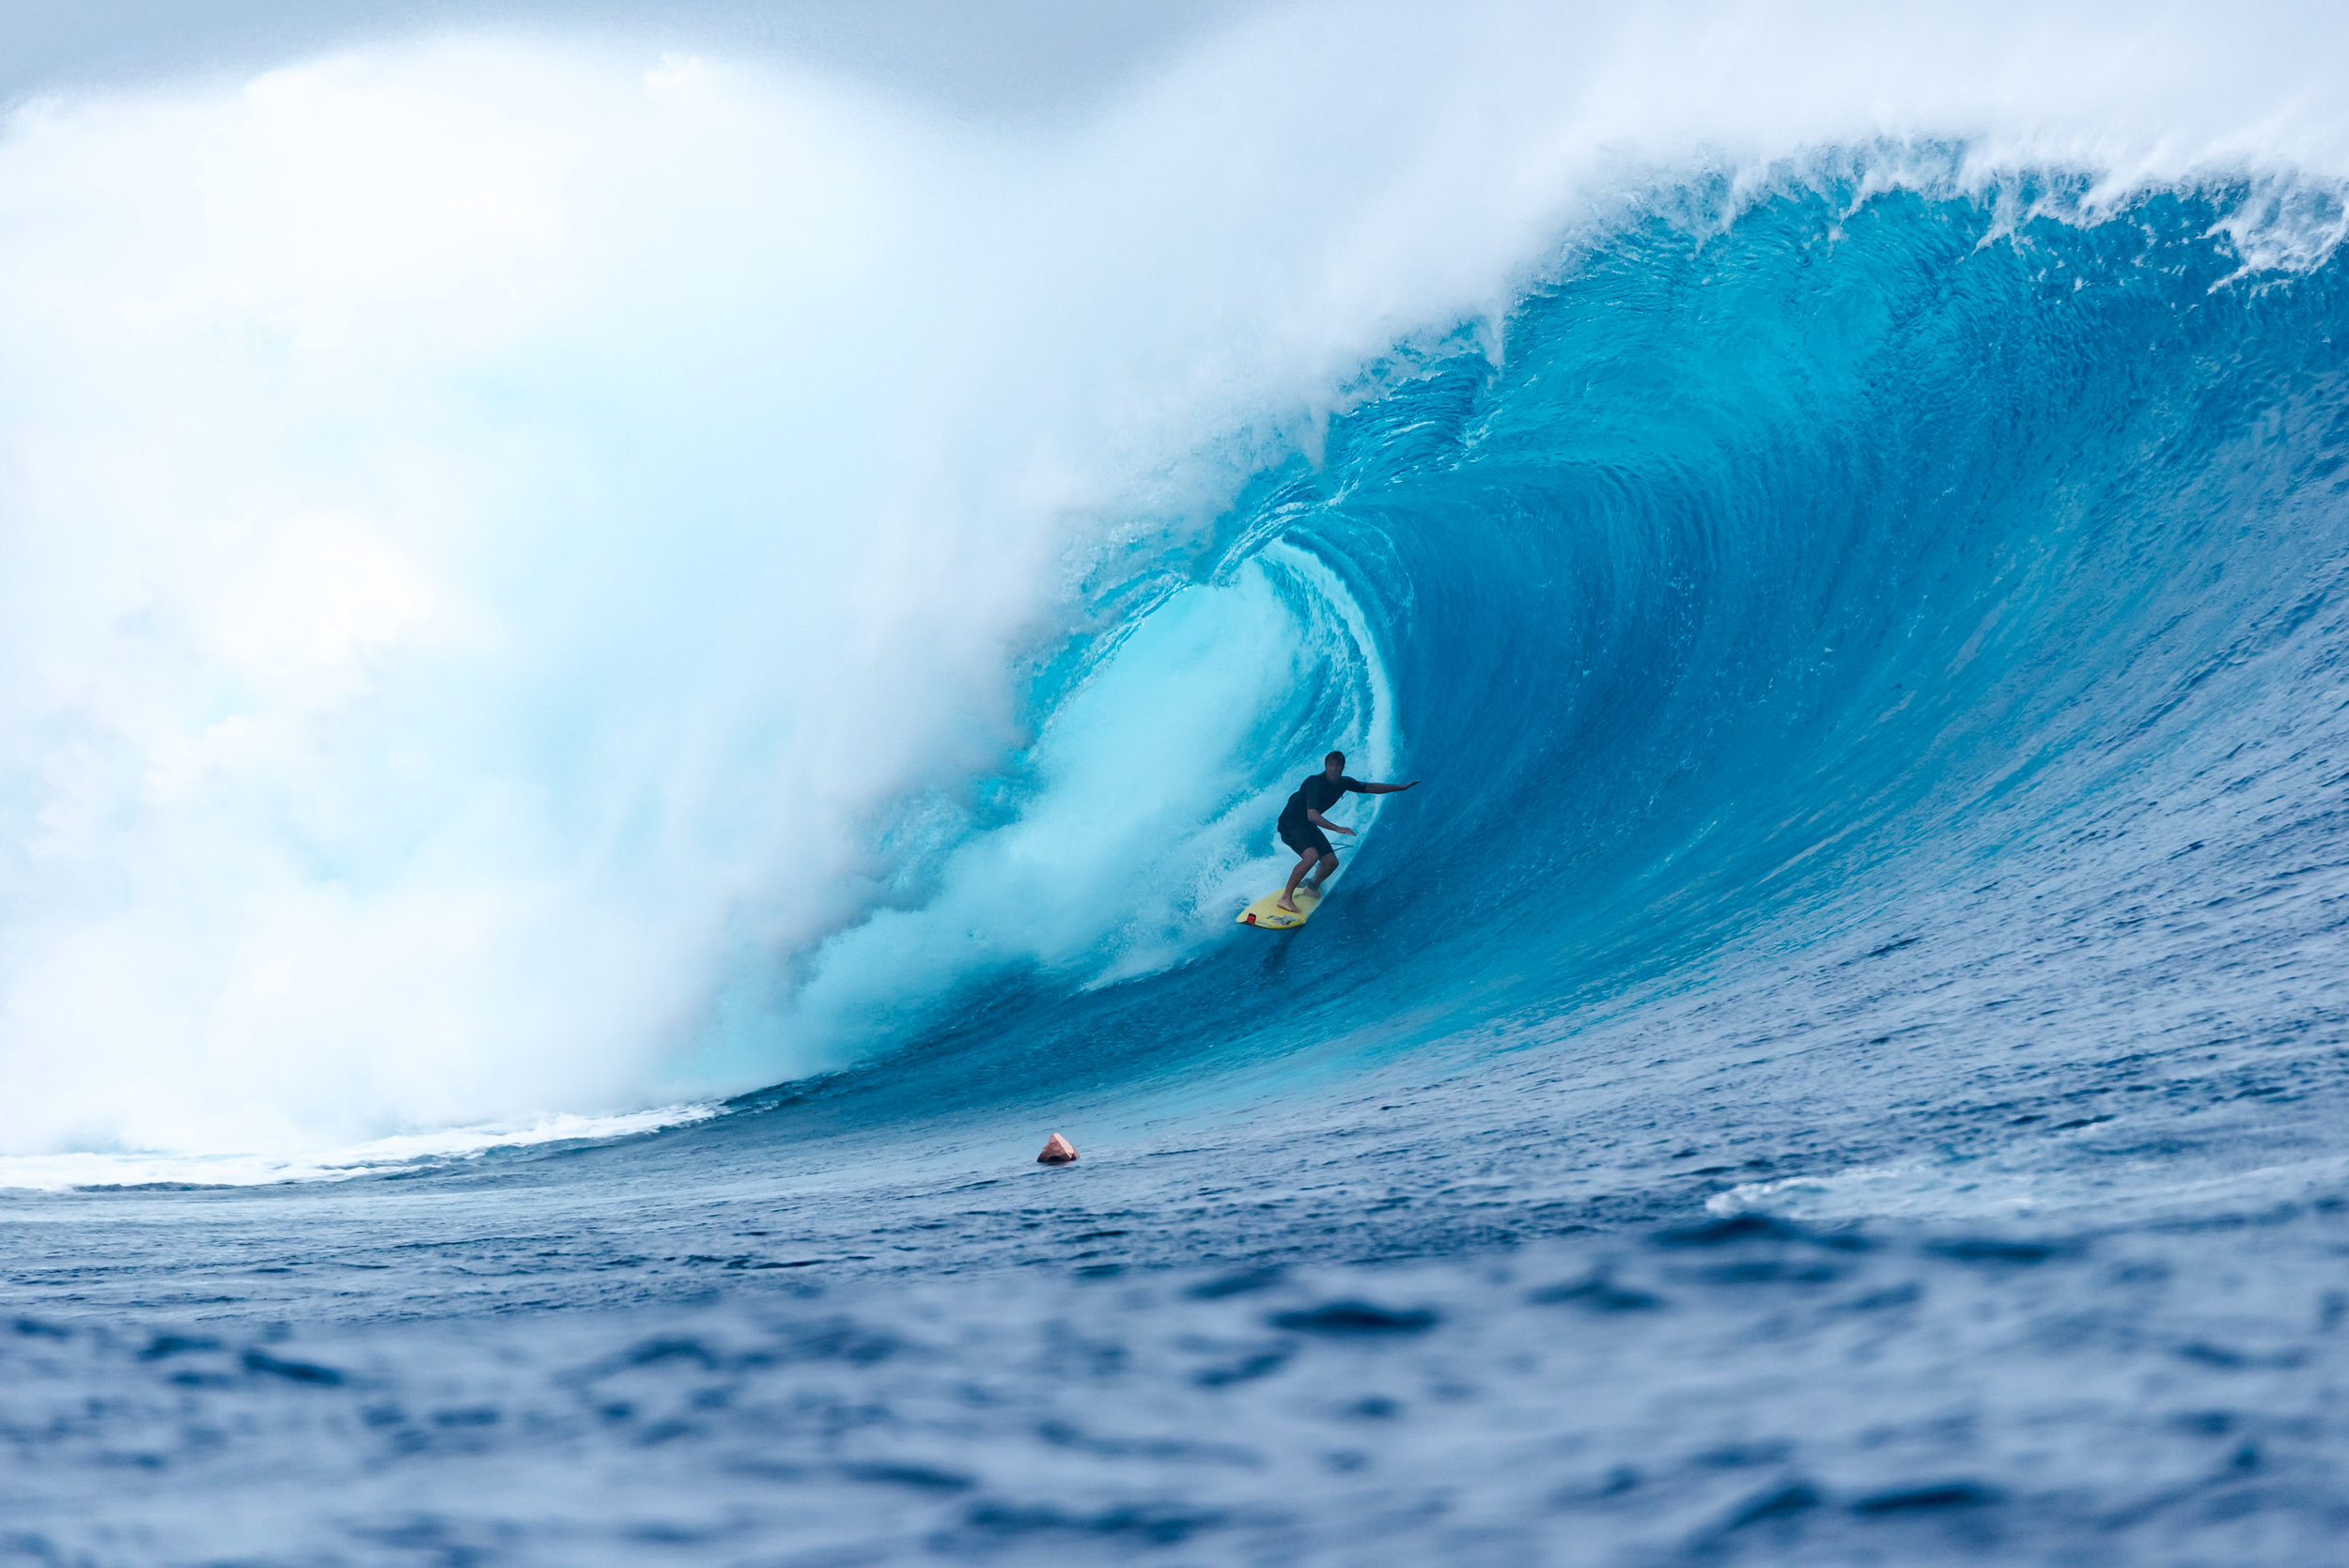 Sequence - How to take amazing surfing photos every time-14.jpg